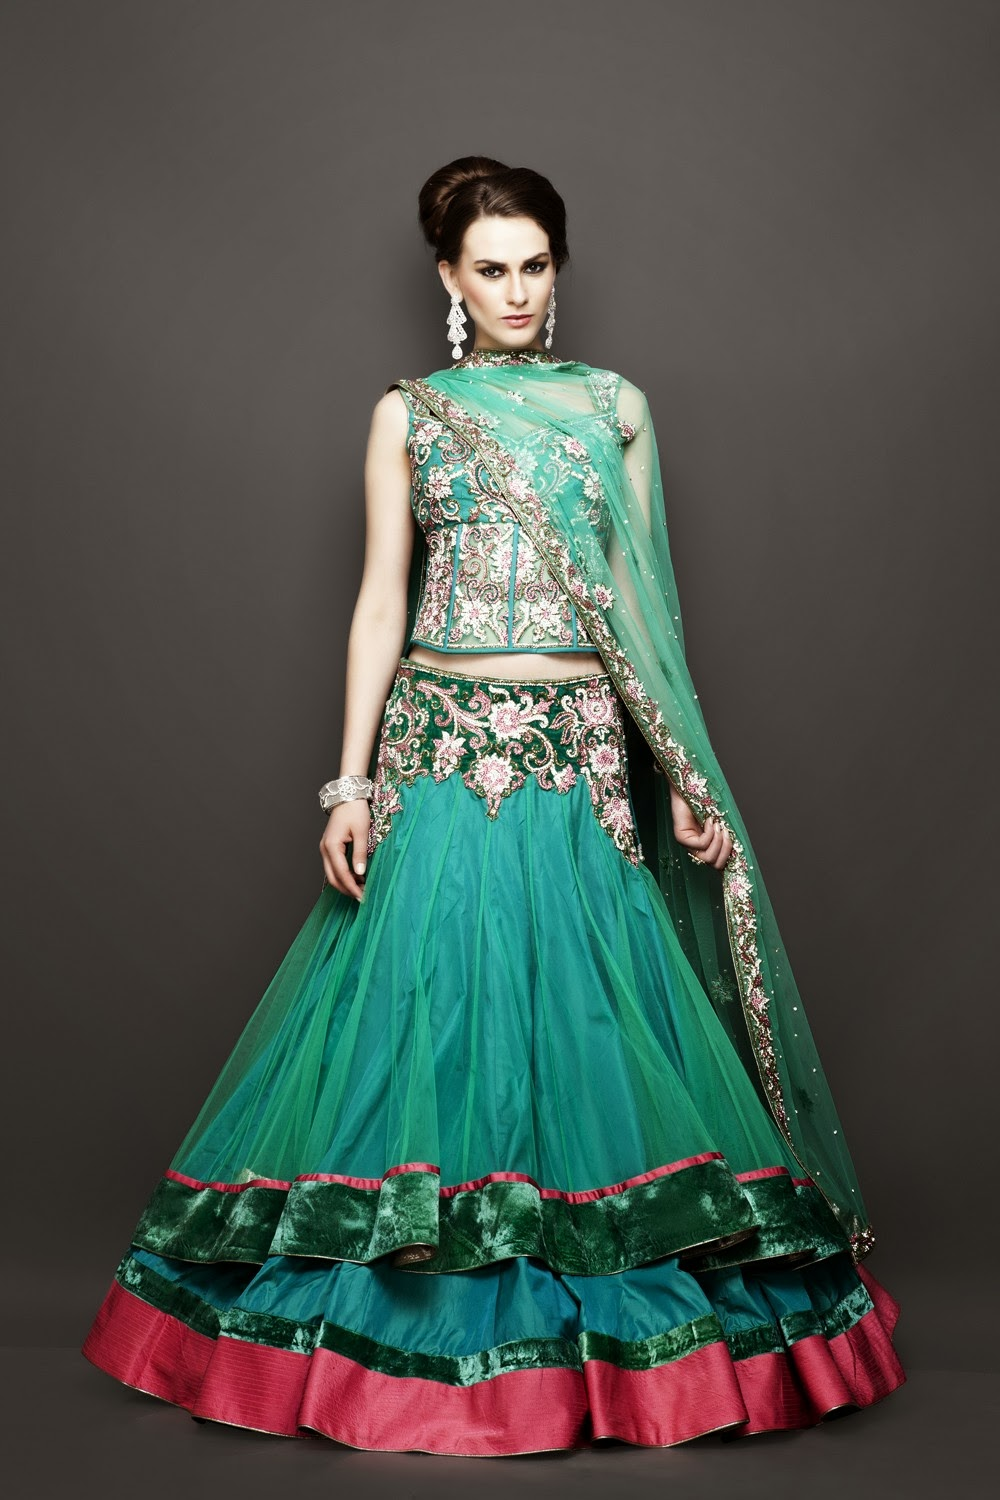 Best Wedding Bridesmaid Lehenga Outfits 2014 - Fashion Me Now